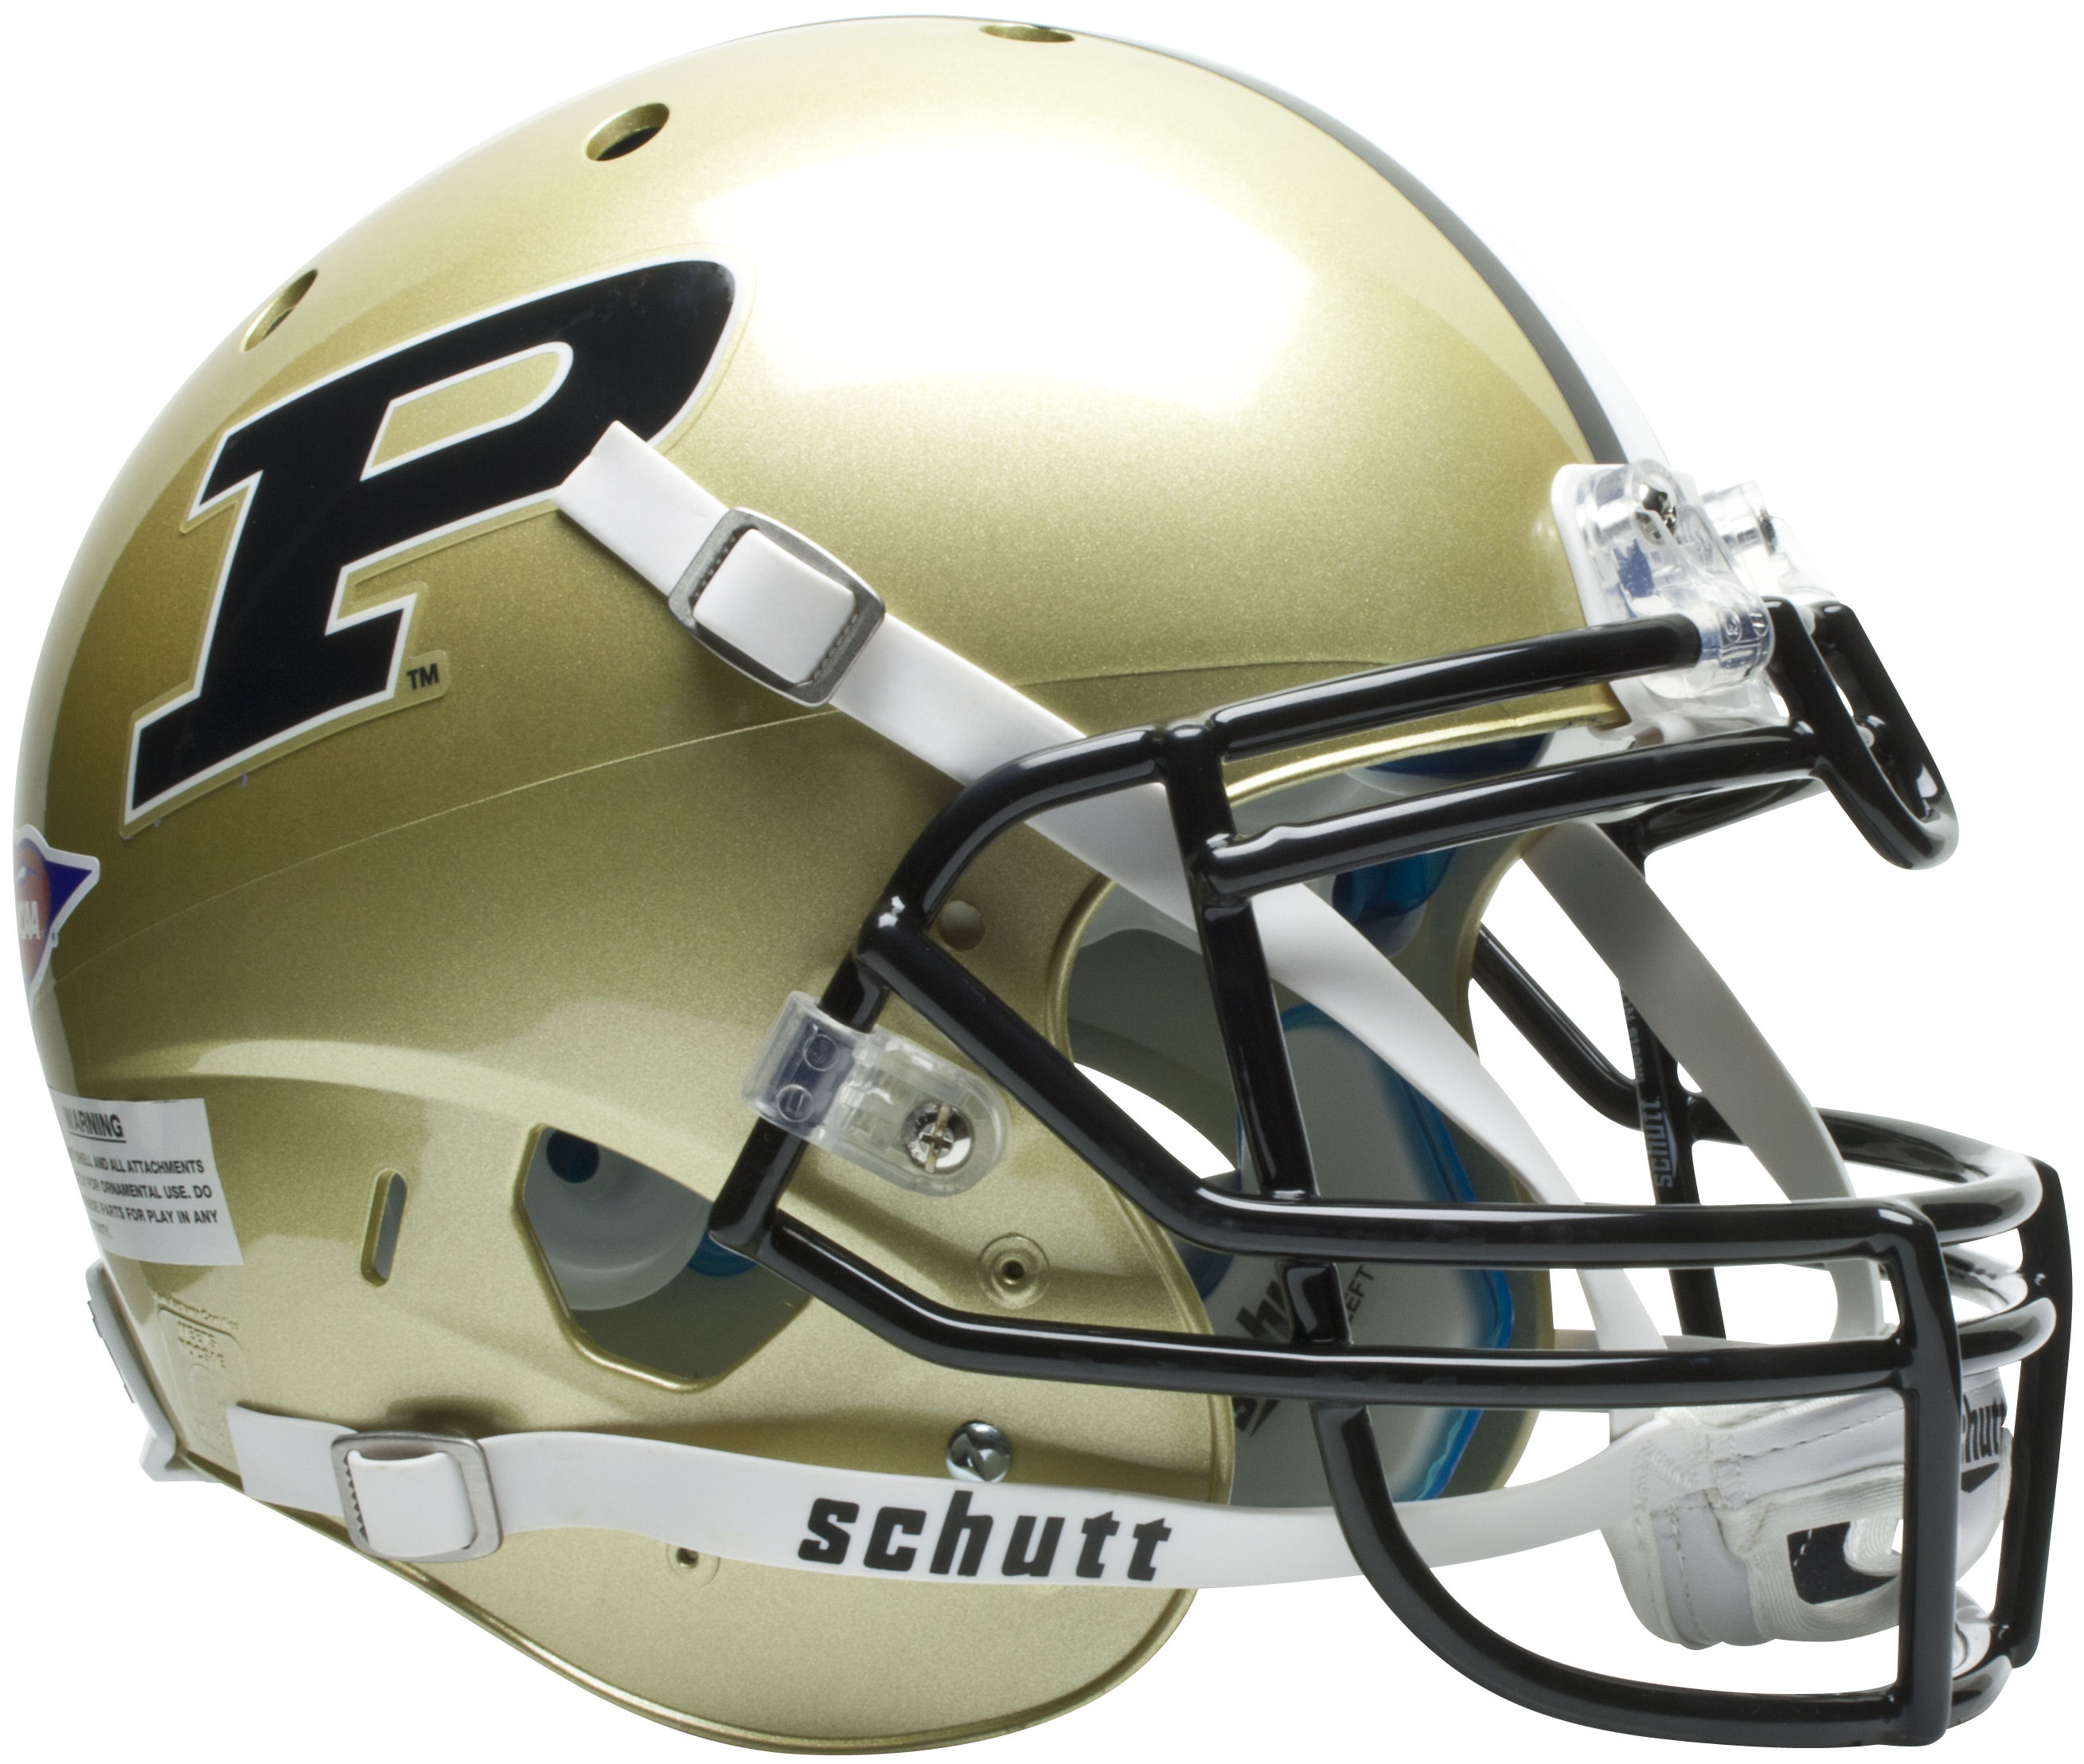 Purdue Boilermakers Authentic College XP Football Helmet Schutt